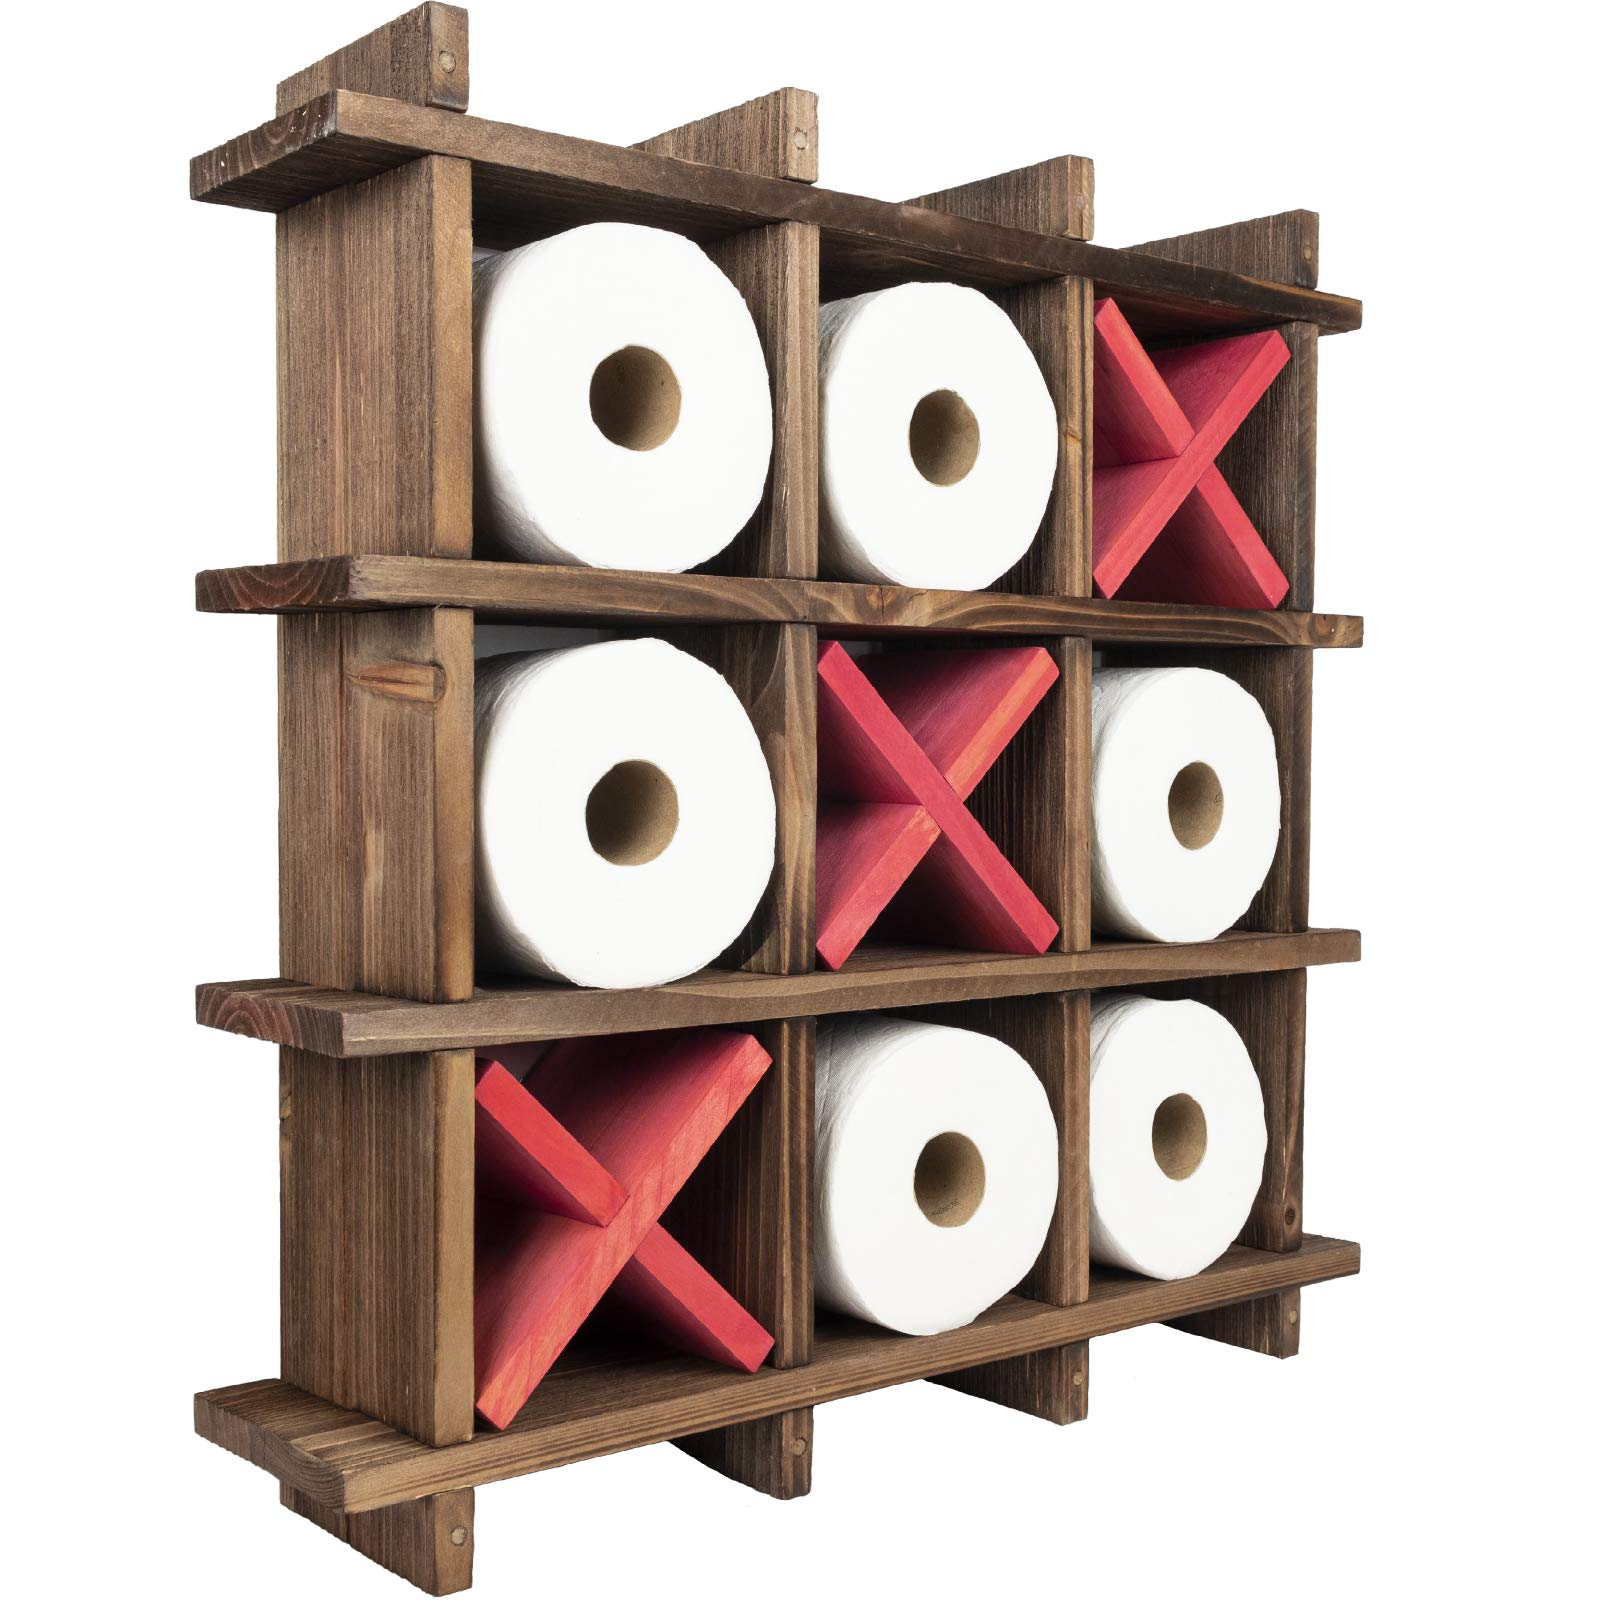 Excello Global Products Rustic Wooden Toilet Paper Holder: Tic Tac Toe Design for Wall Mounted or Freestanding Bathroom Tissue Roll Storage Organizer by Excello Global Products